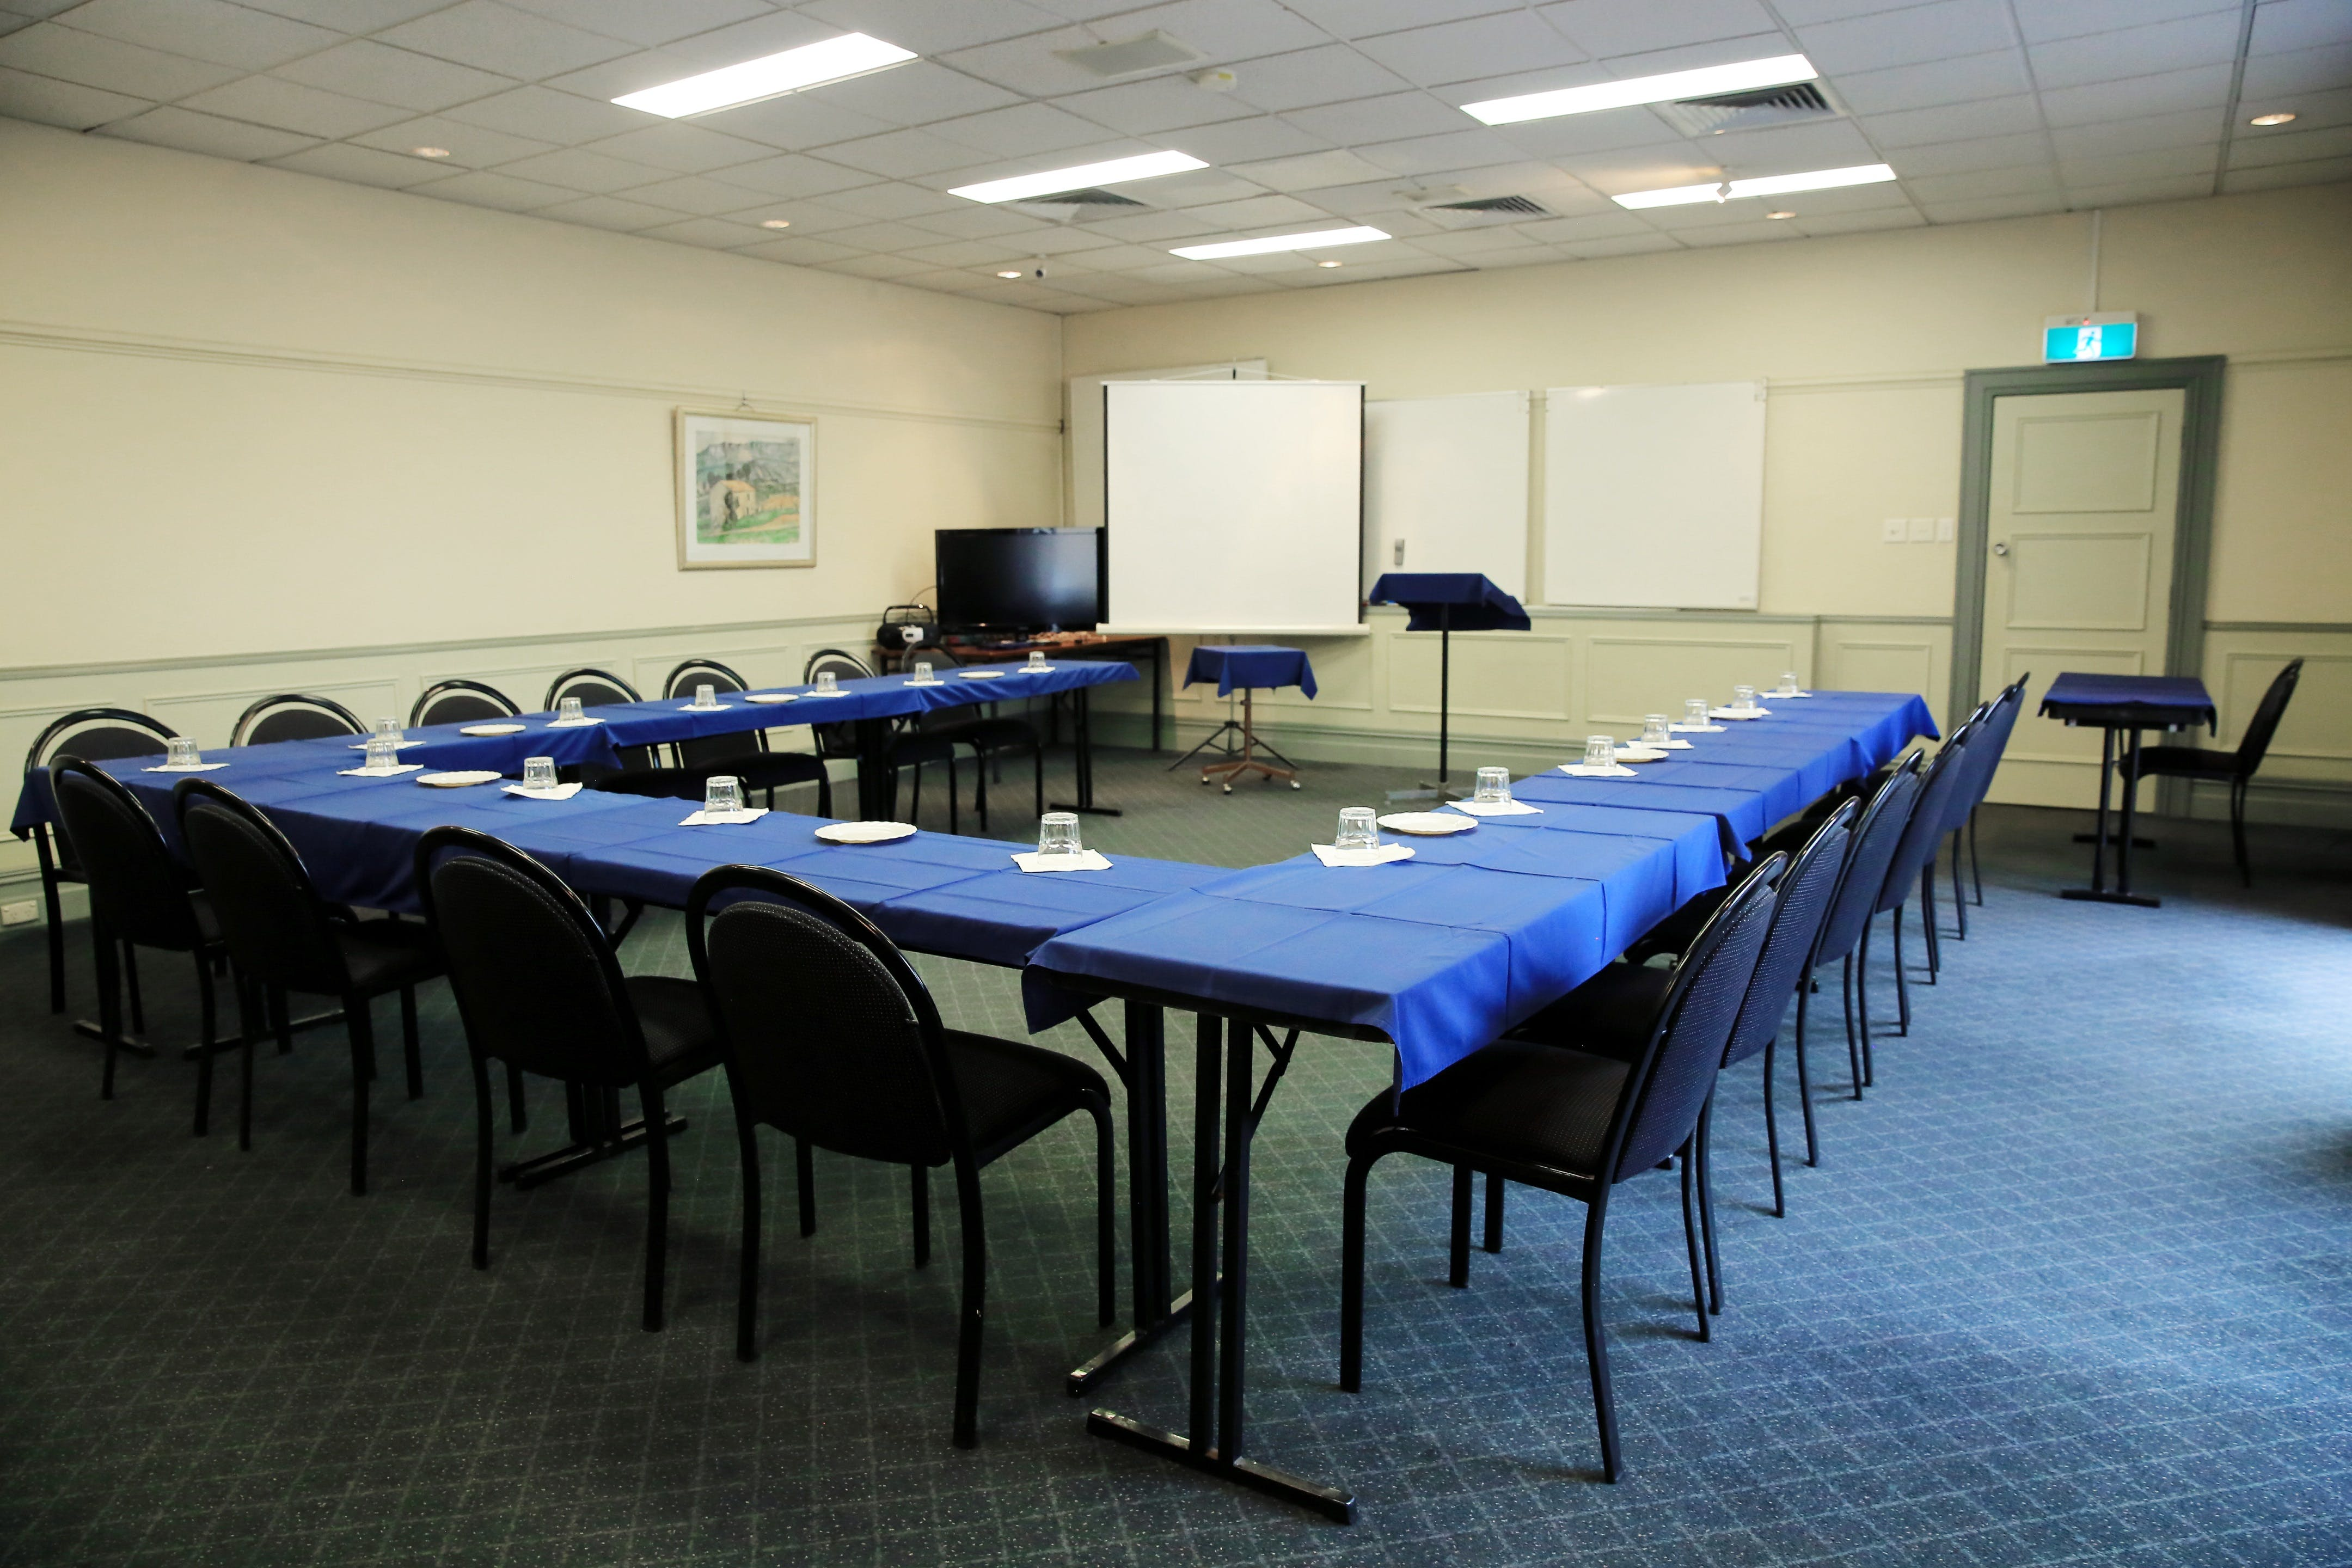 Campbell Room, function room at Best Western Twin Towers Inn, image 3